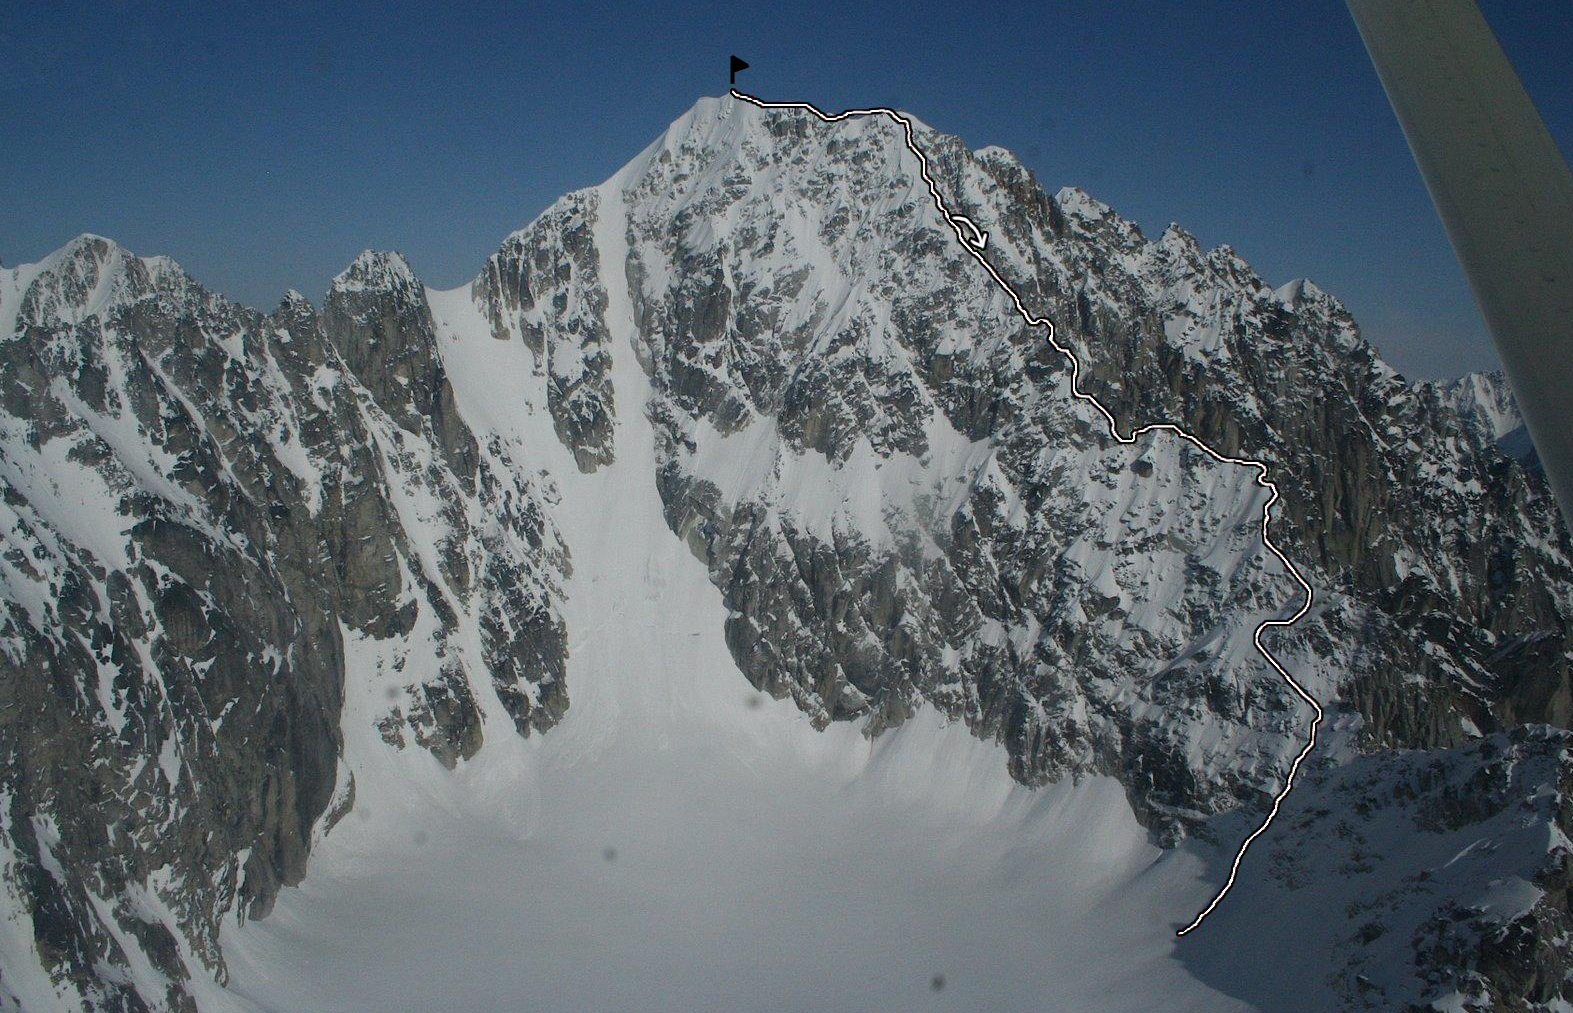 Ice Pyramid's first ascent route, with the arrow showing the rappel to the south on the descent.